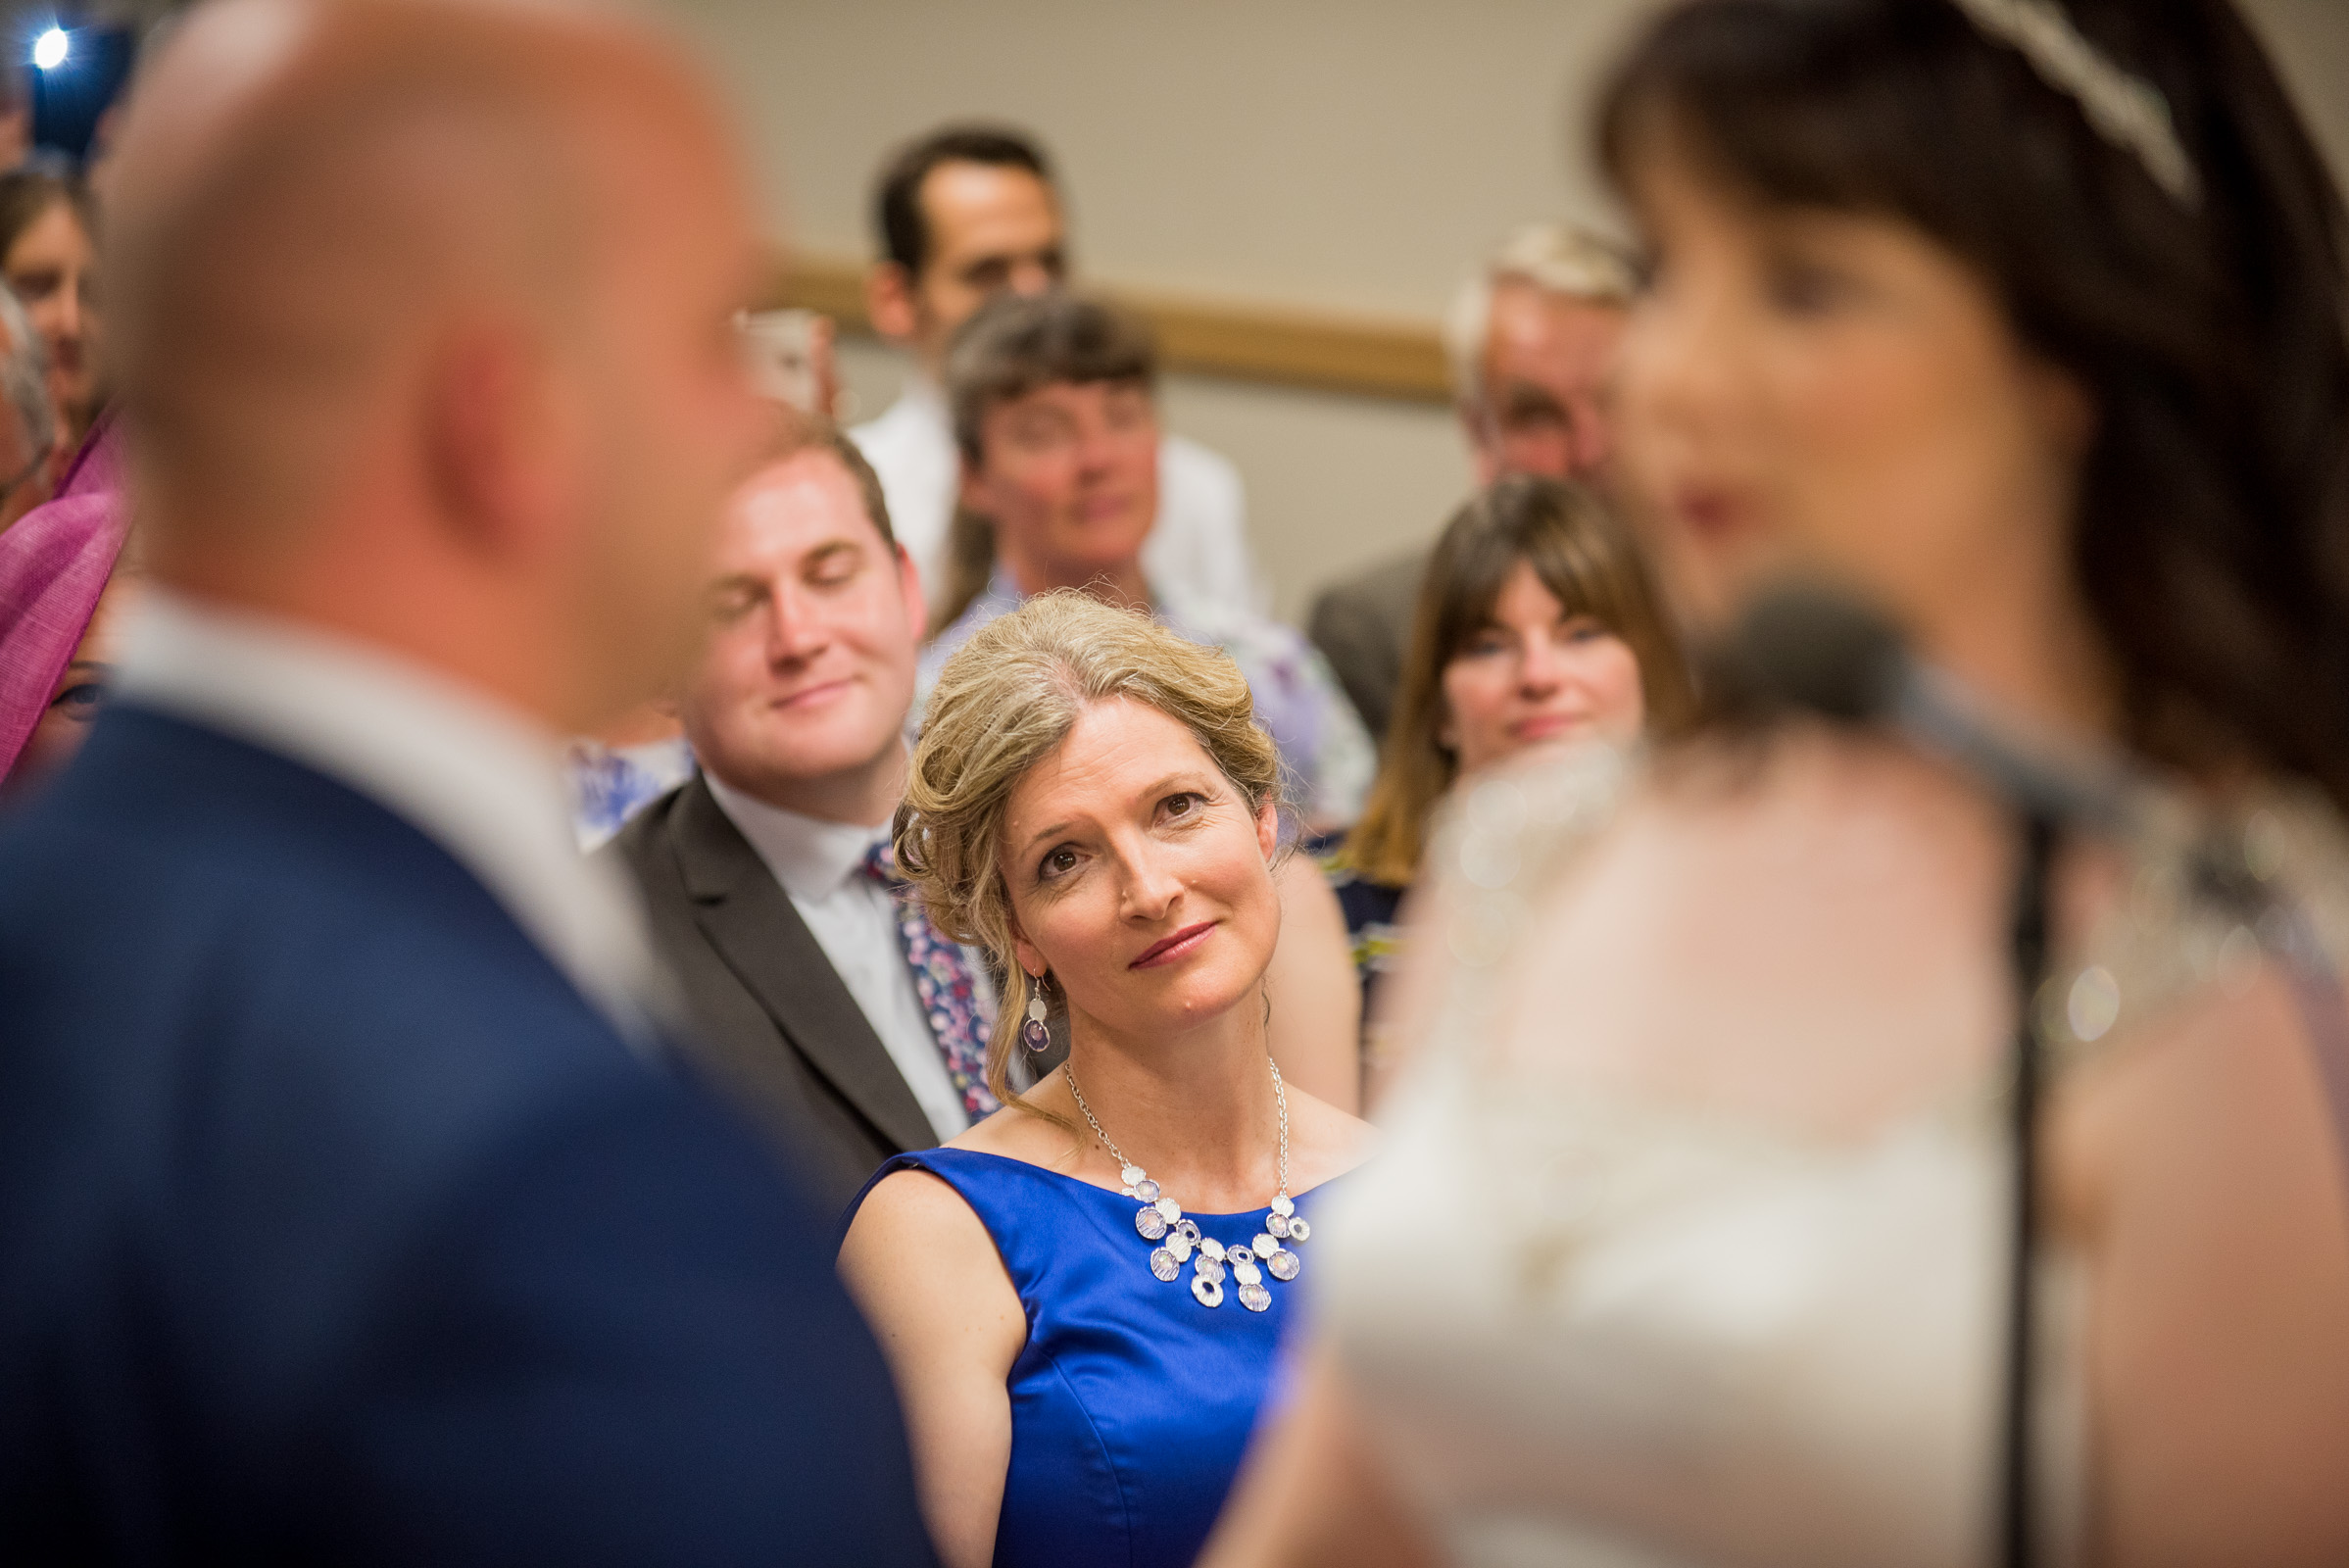 Professional Wedding Photographer - James A Wedding Photography